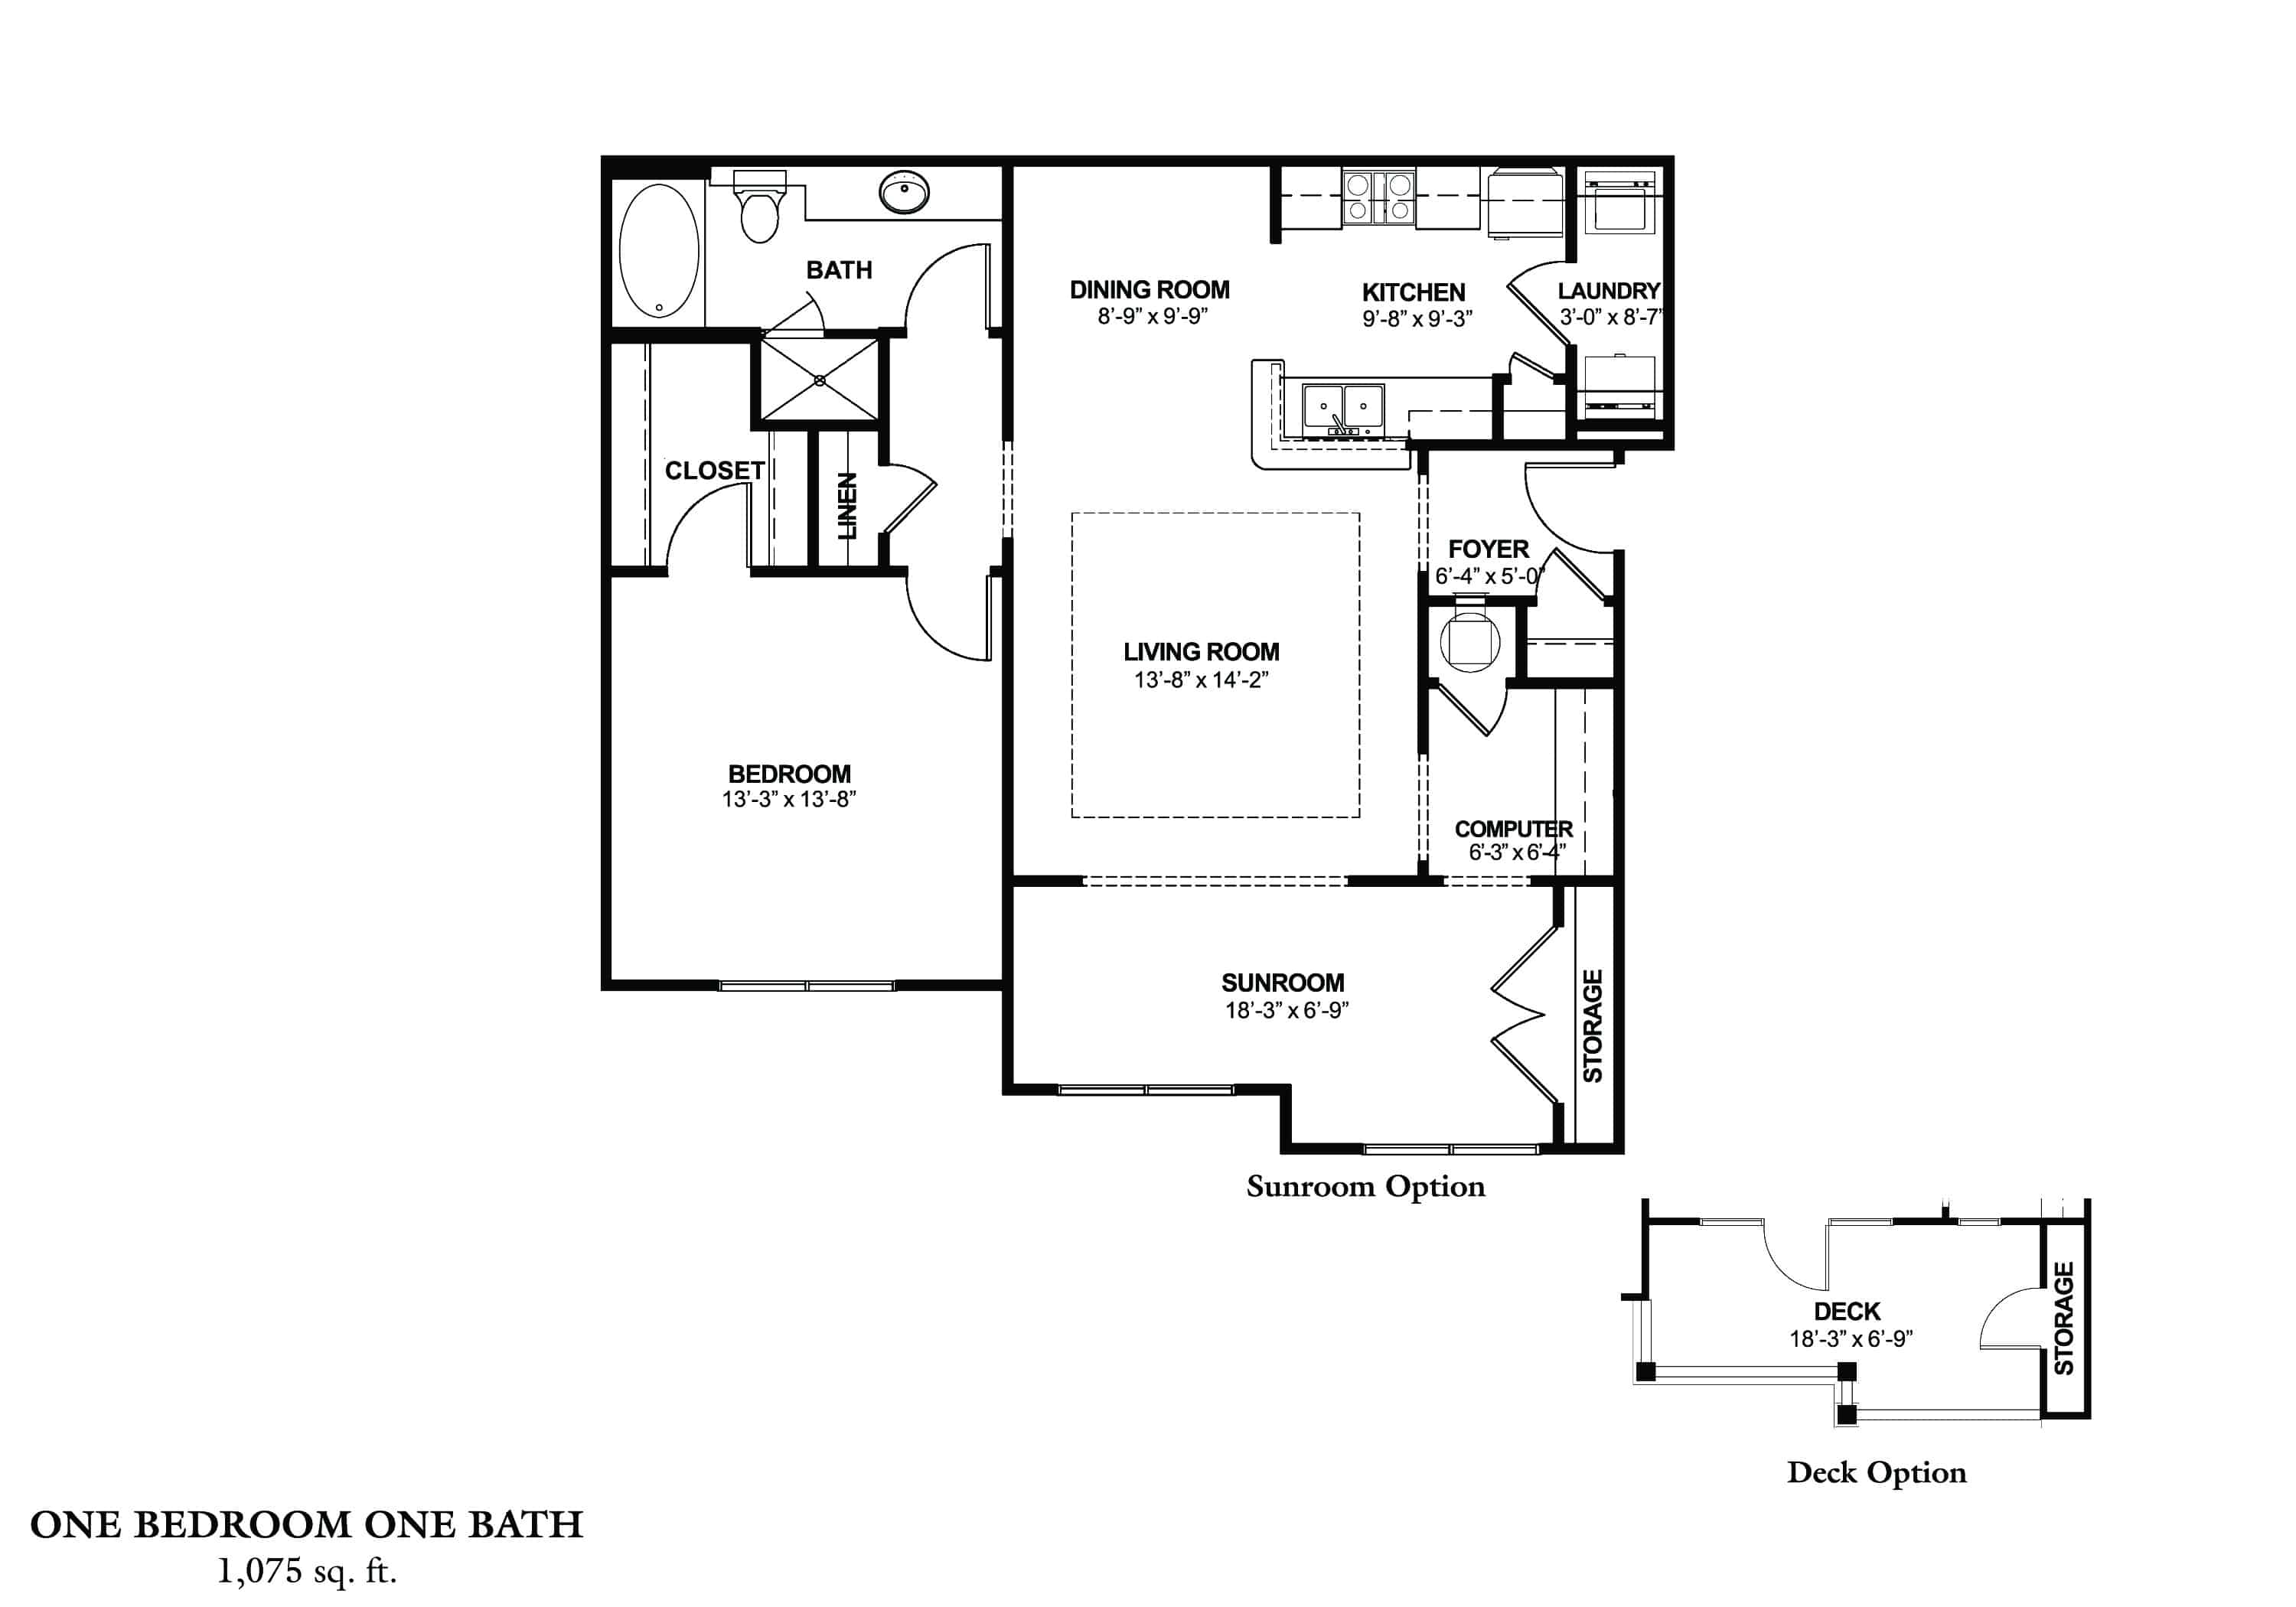 One Bedroom (A) - Phase II Approx. 906 sq. ft. with 169 sq. ft. Deck Rent From $895 Beds 1 Baths 1